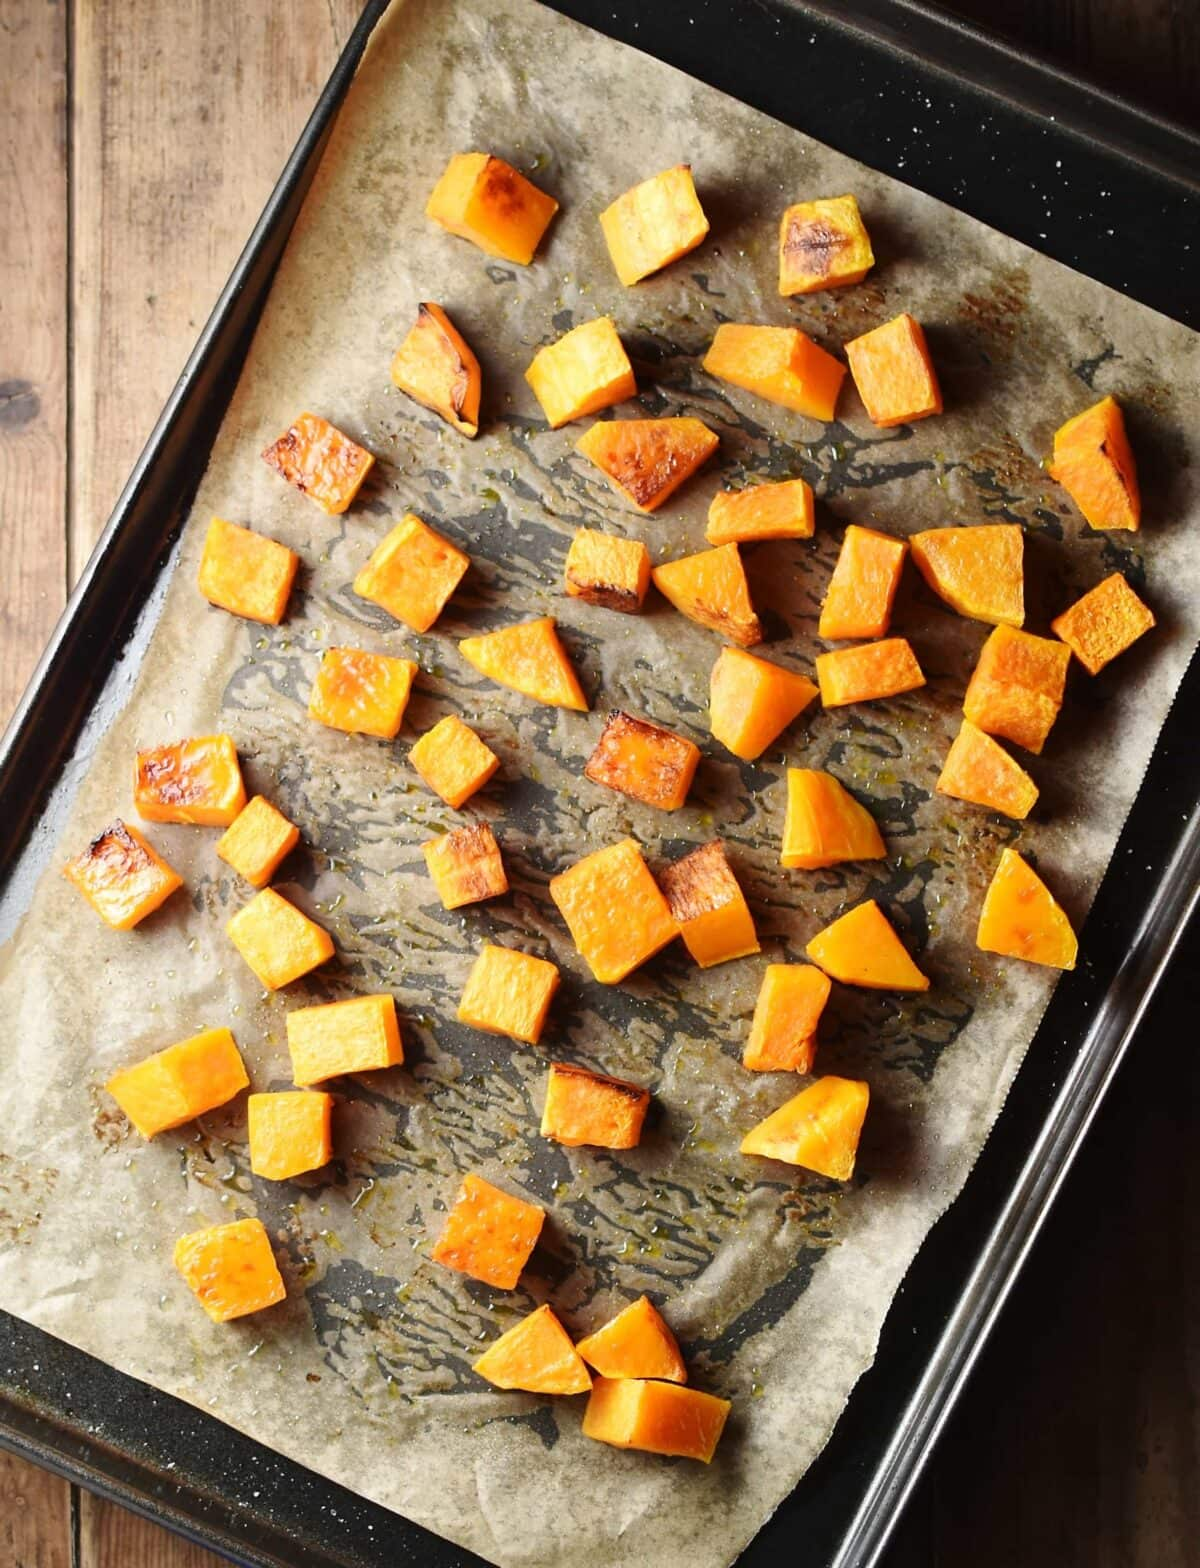 Butternut squash cubes on top of oven tray lined with parchment paper.